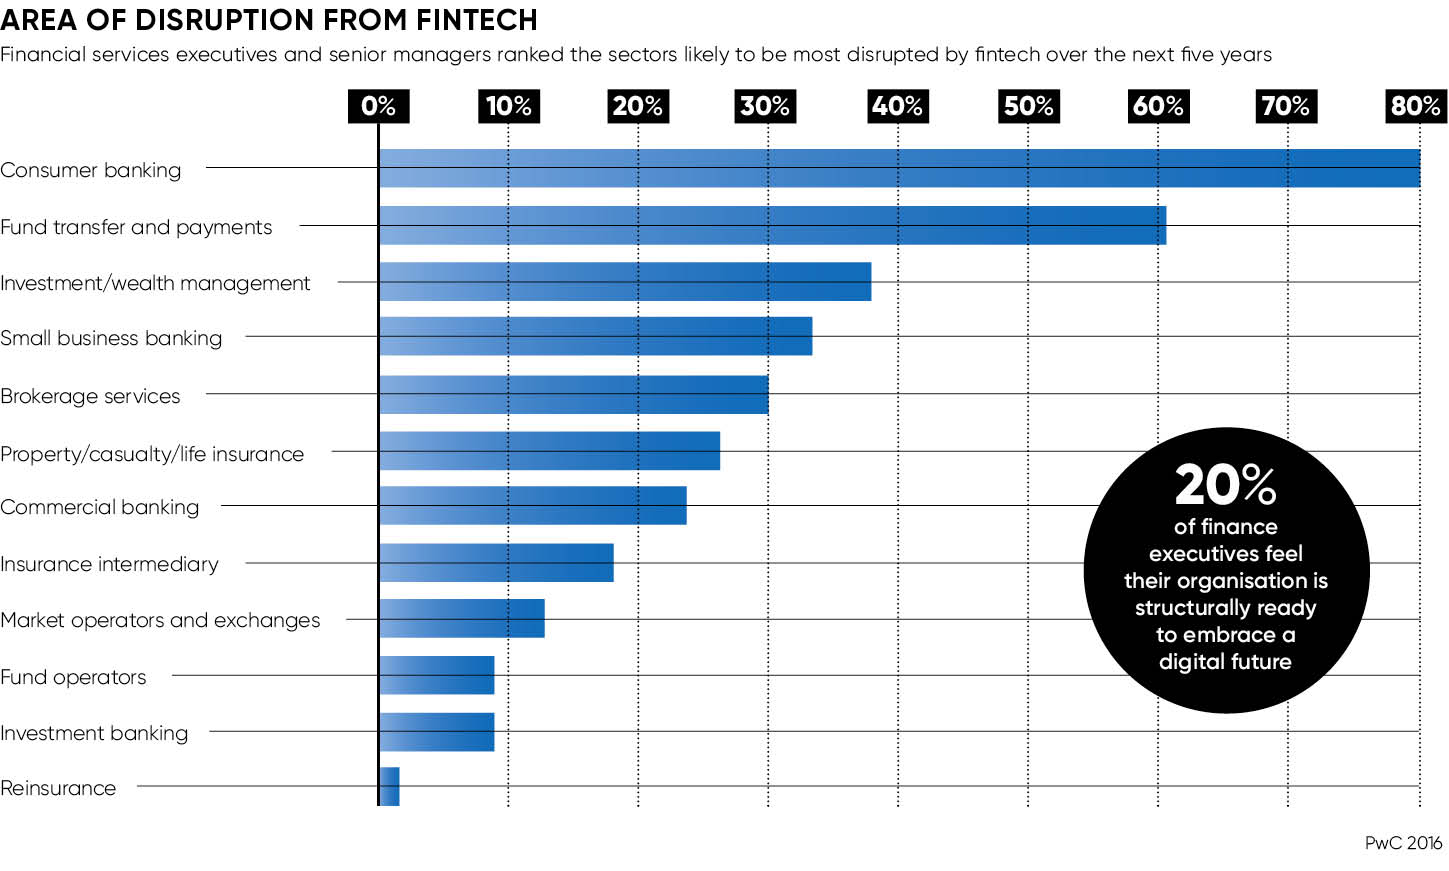 AREA OF DISRUPTION FROM FINTECH